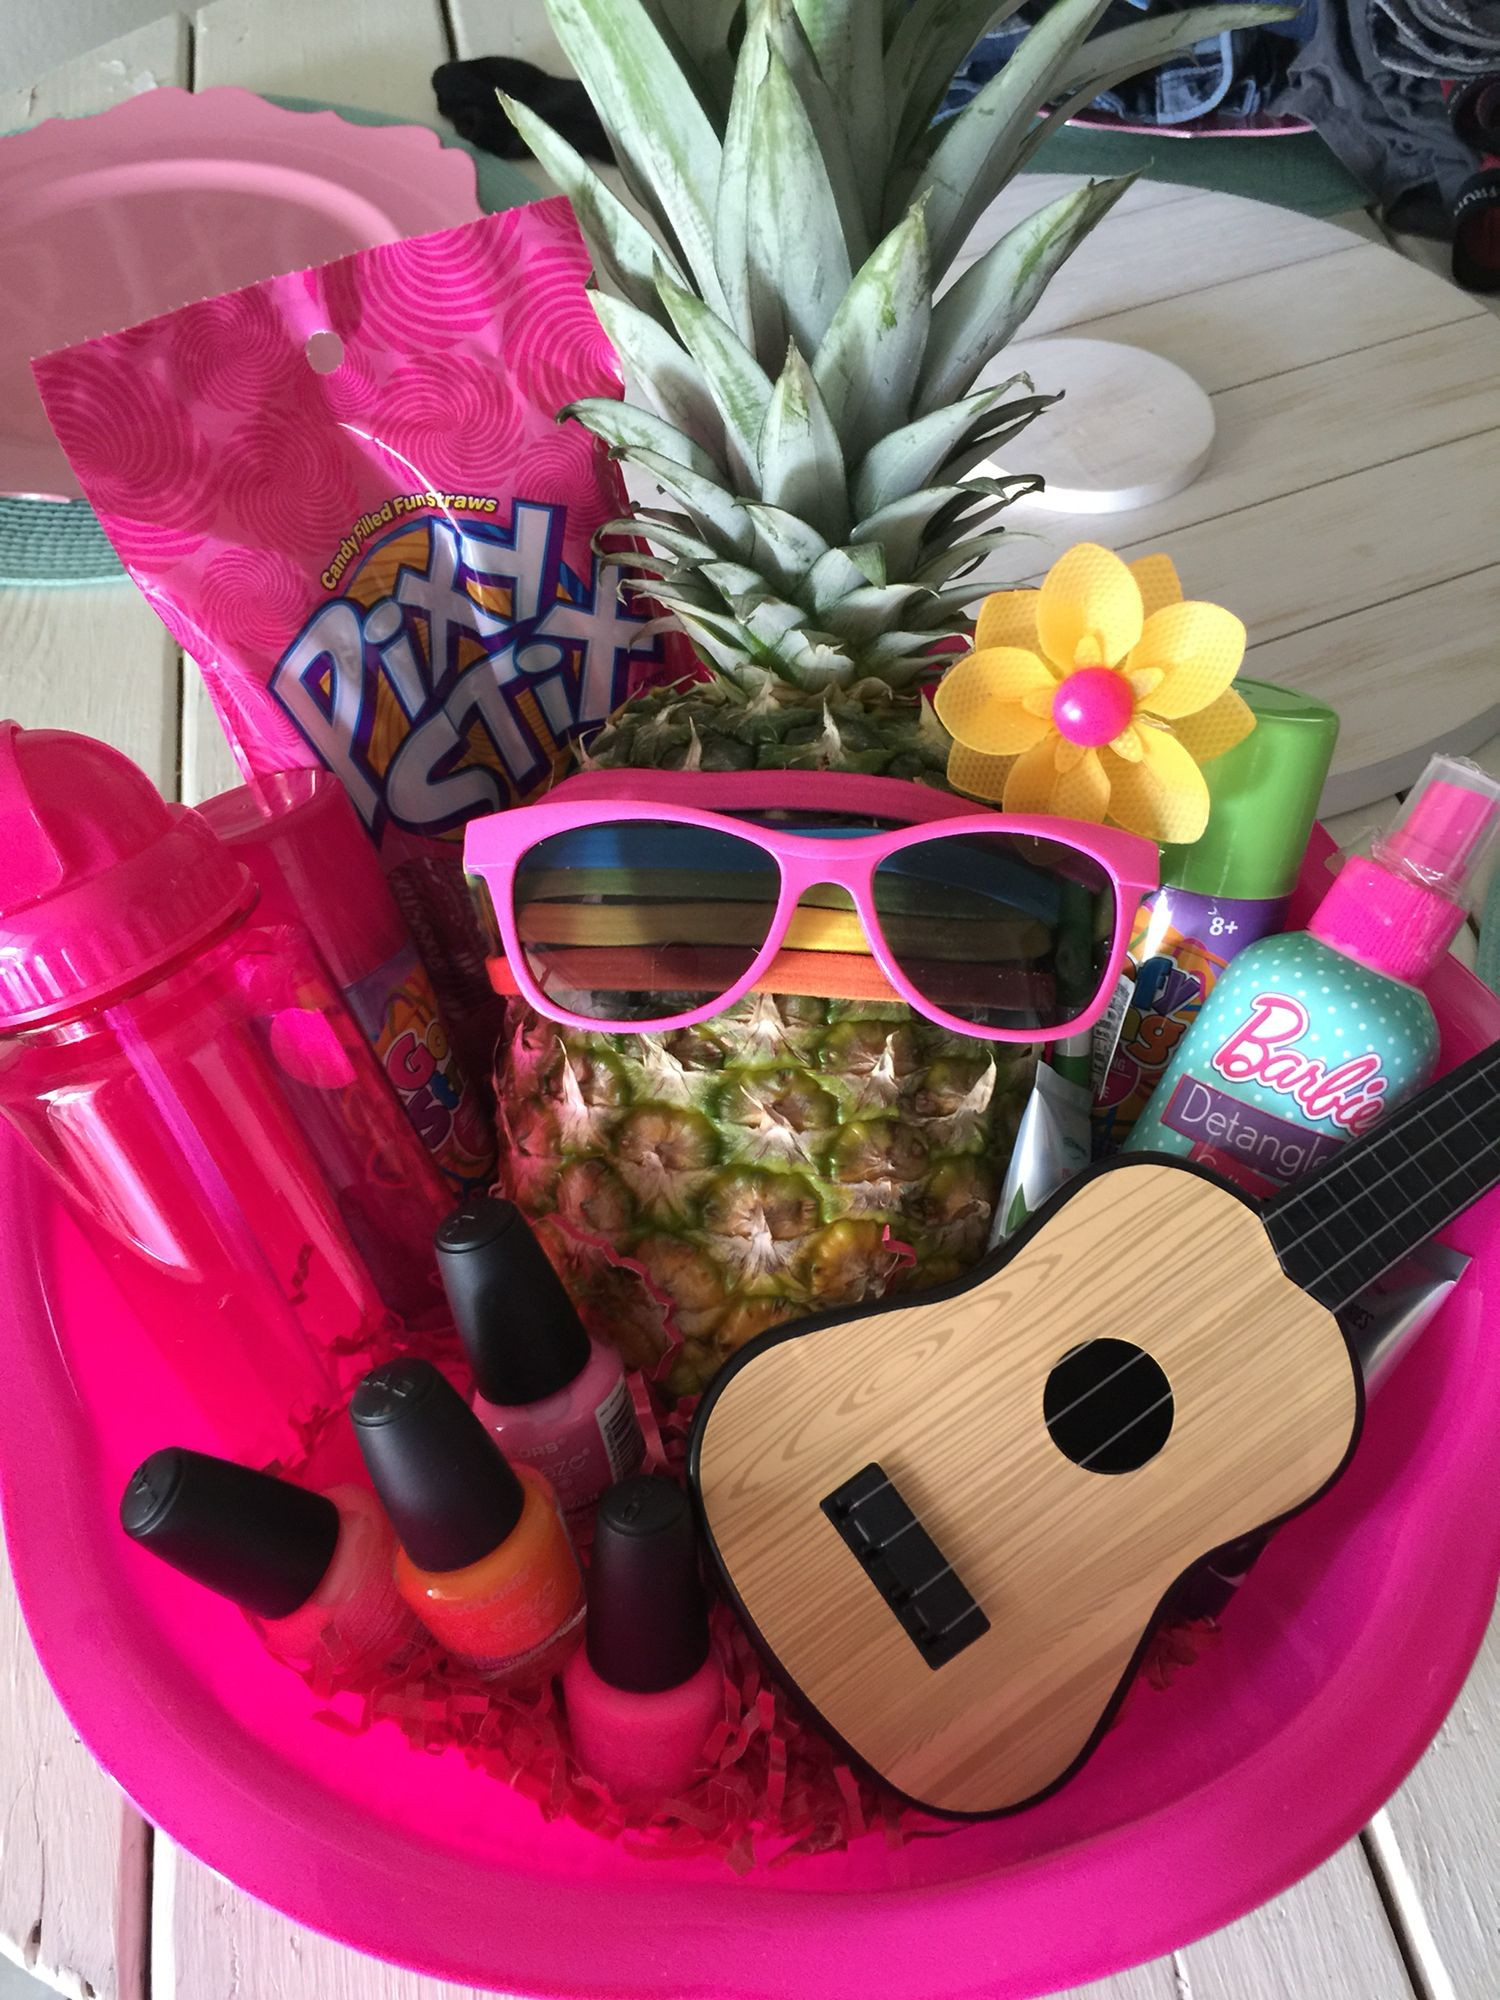 Best ideas about Hawaiian Gift Ideas . Save or Pin Made this DIY Hawaiian themed basket for a little girls Now.